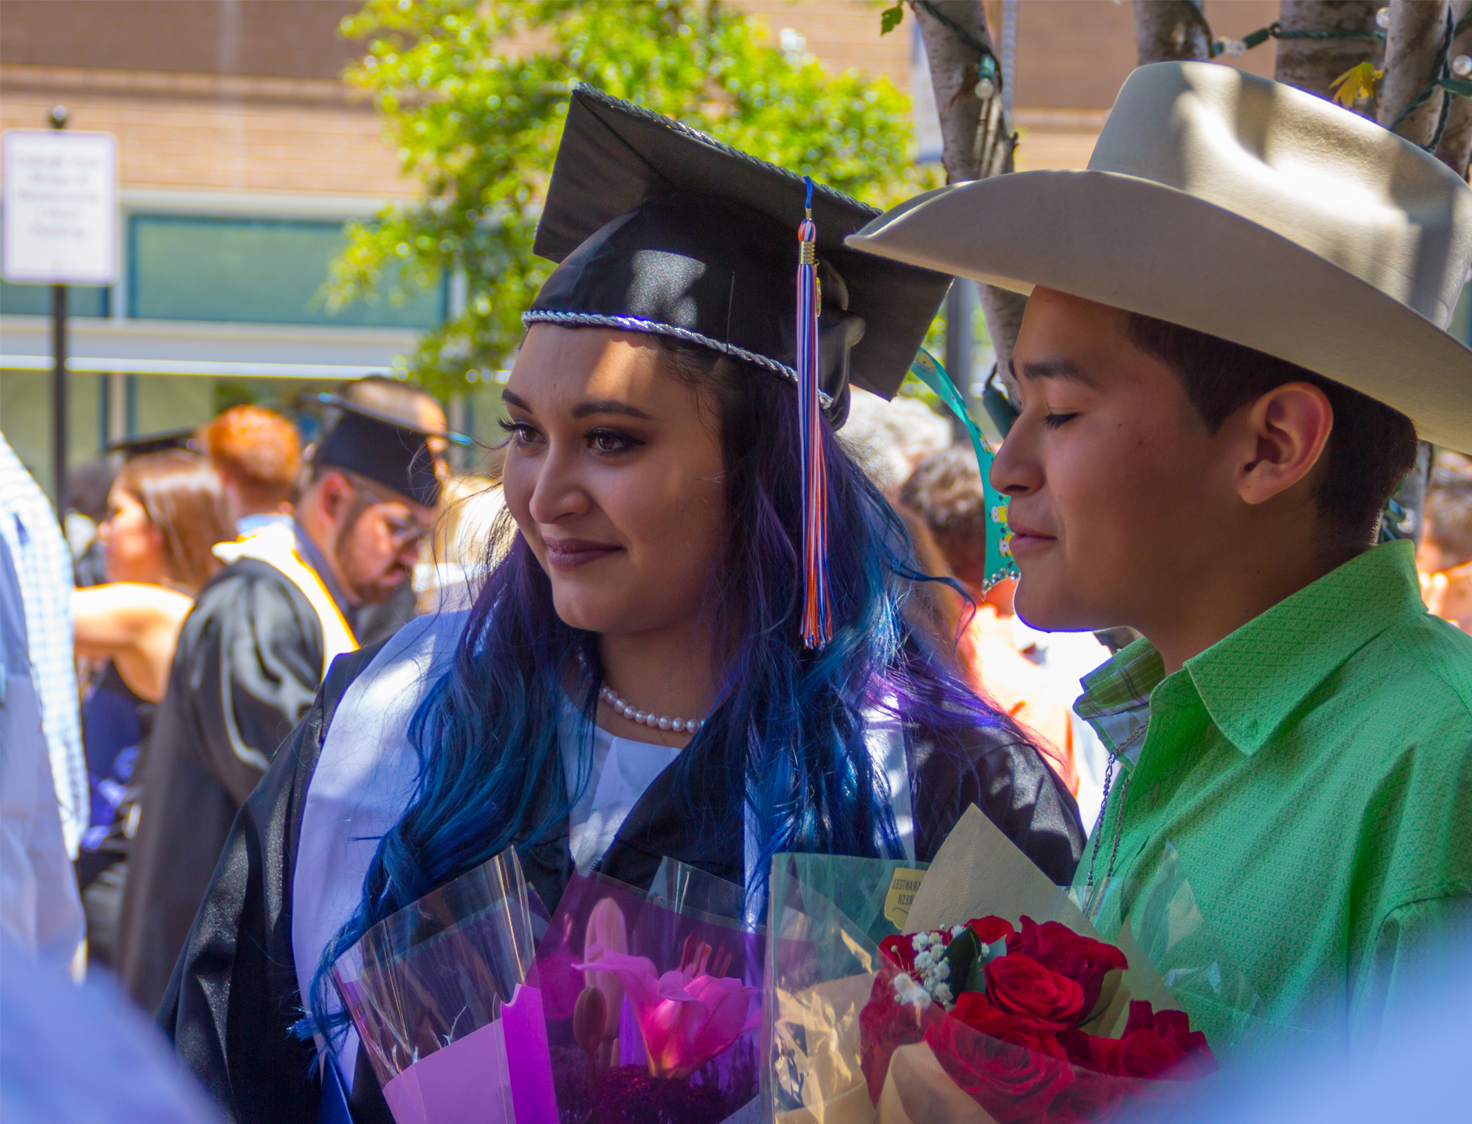 Woman with purple and blue hair in a graduation cap and gown posing with a boy in a cowboy hat.